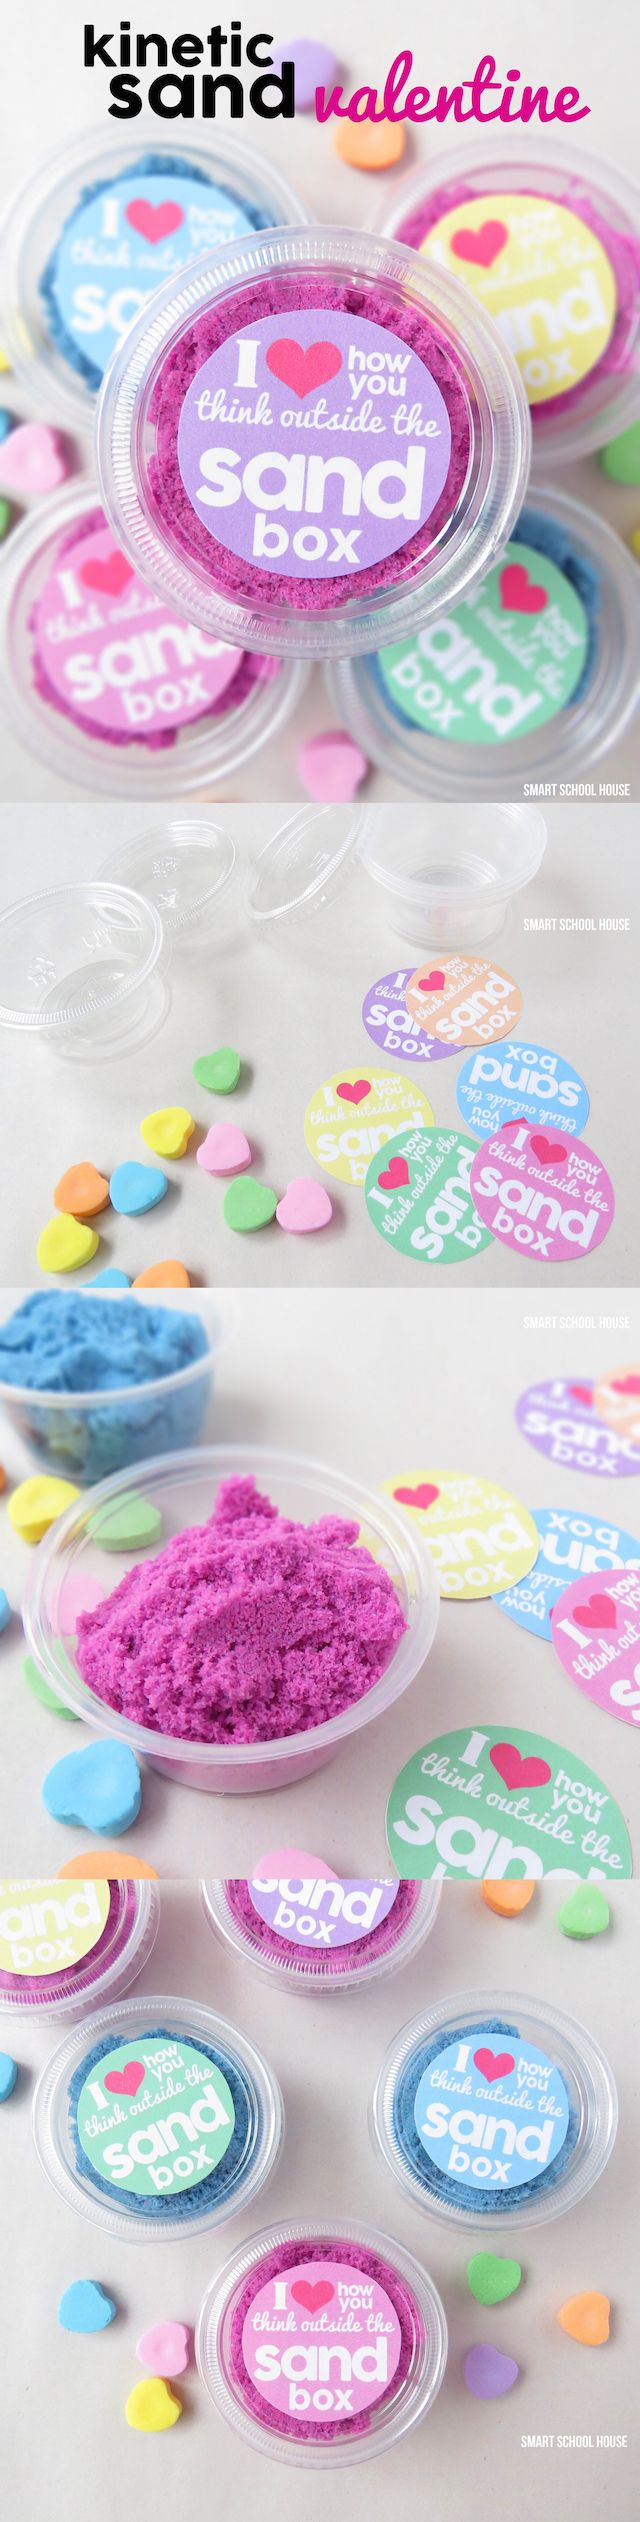 kinetic sand valentine with free printable - a fun non-candy alternative for kids to share on Valentine's Day!